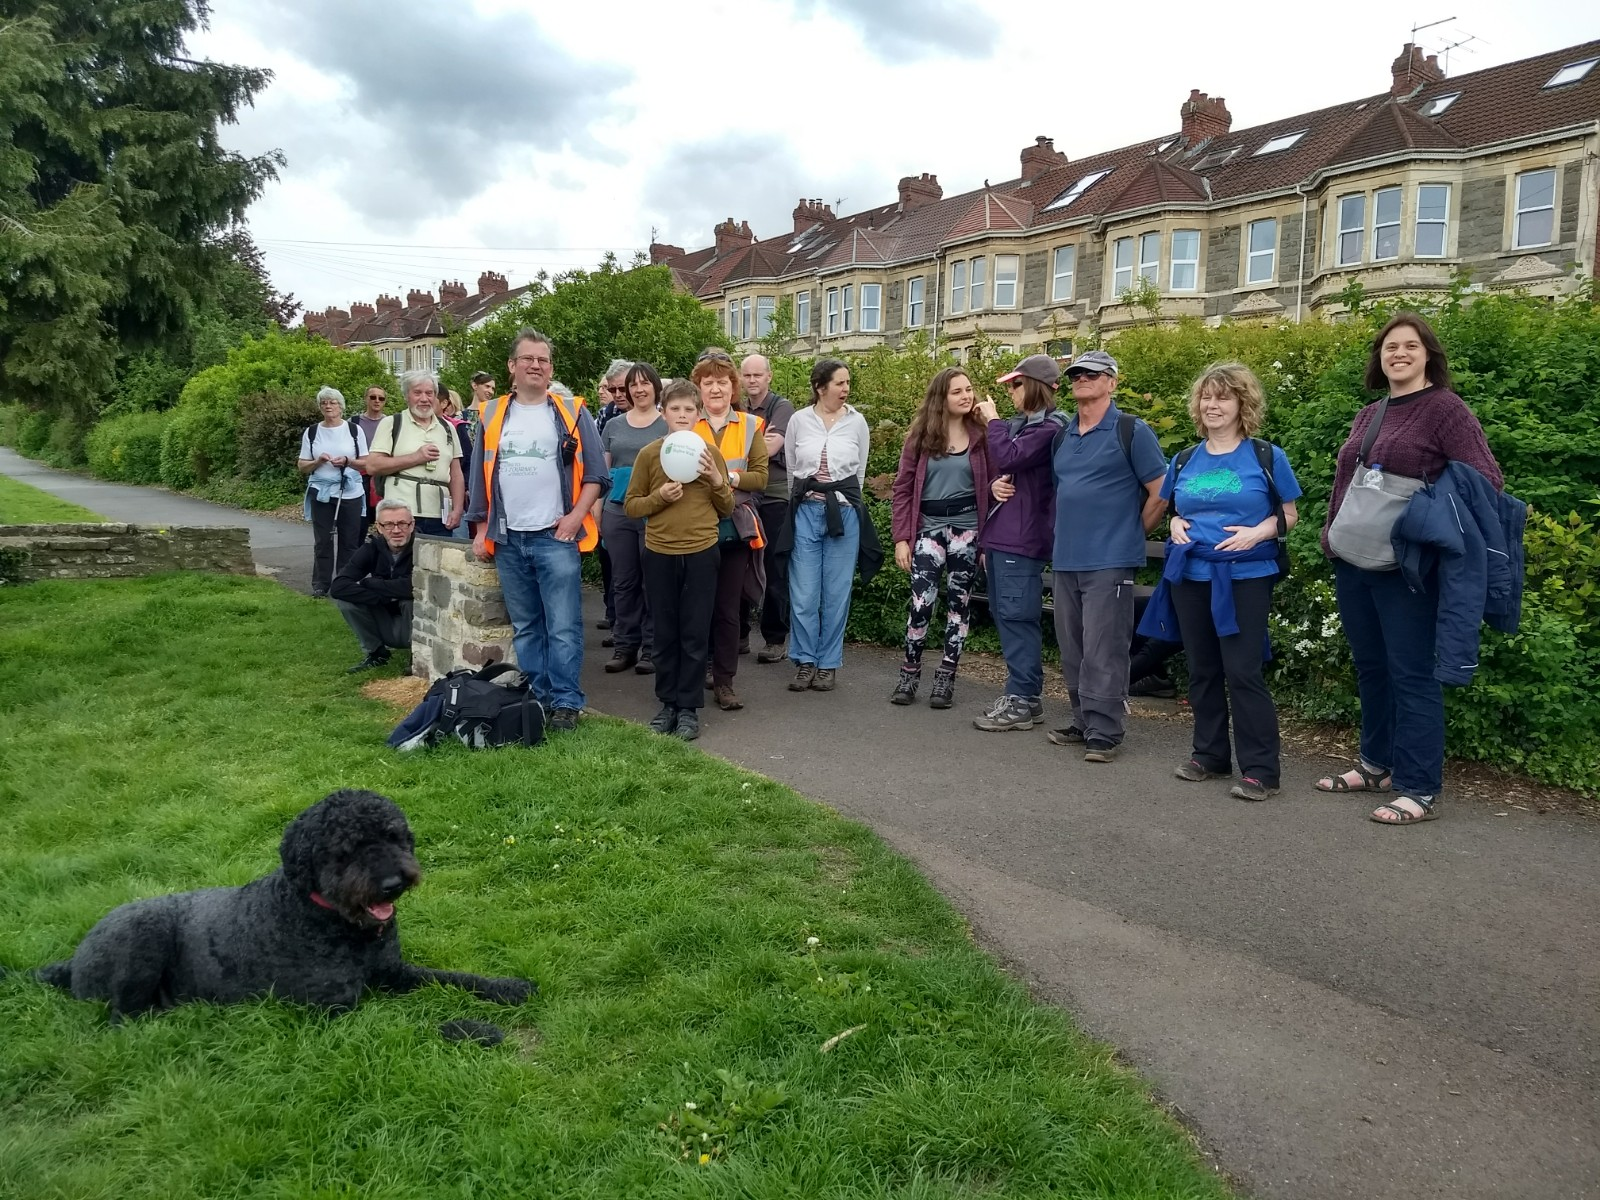 Skyline walk across South Bristol attracts visitors from far afield